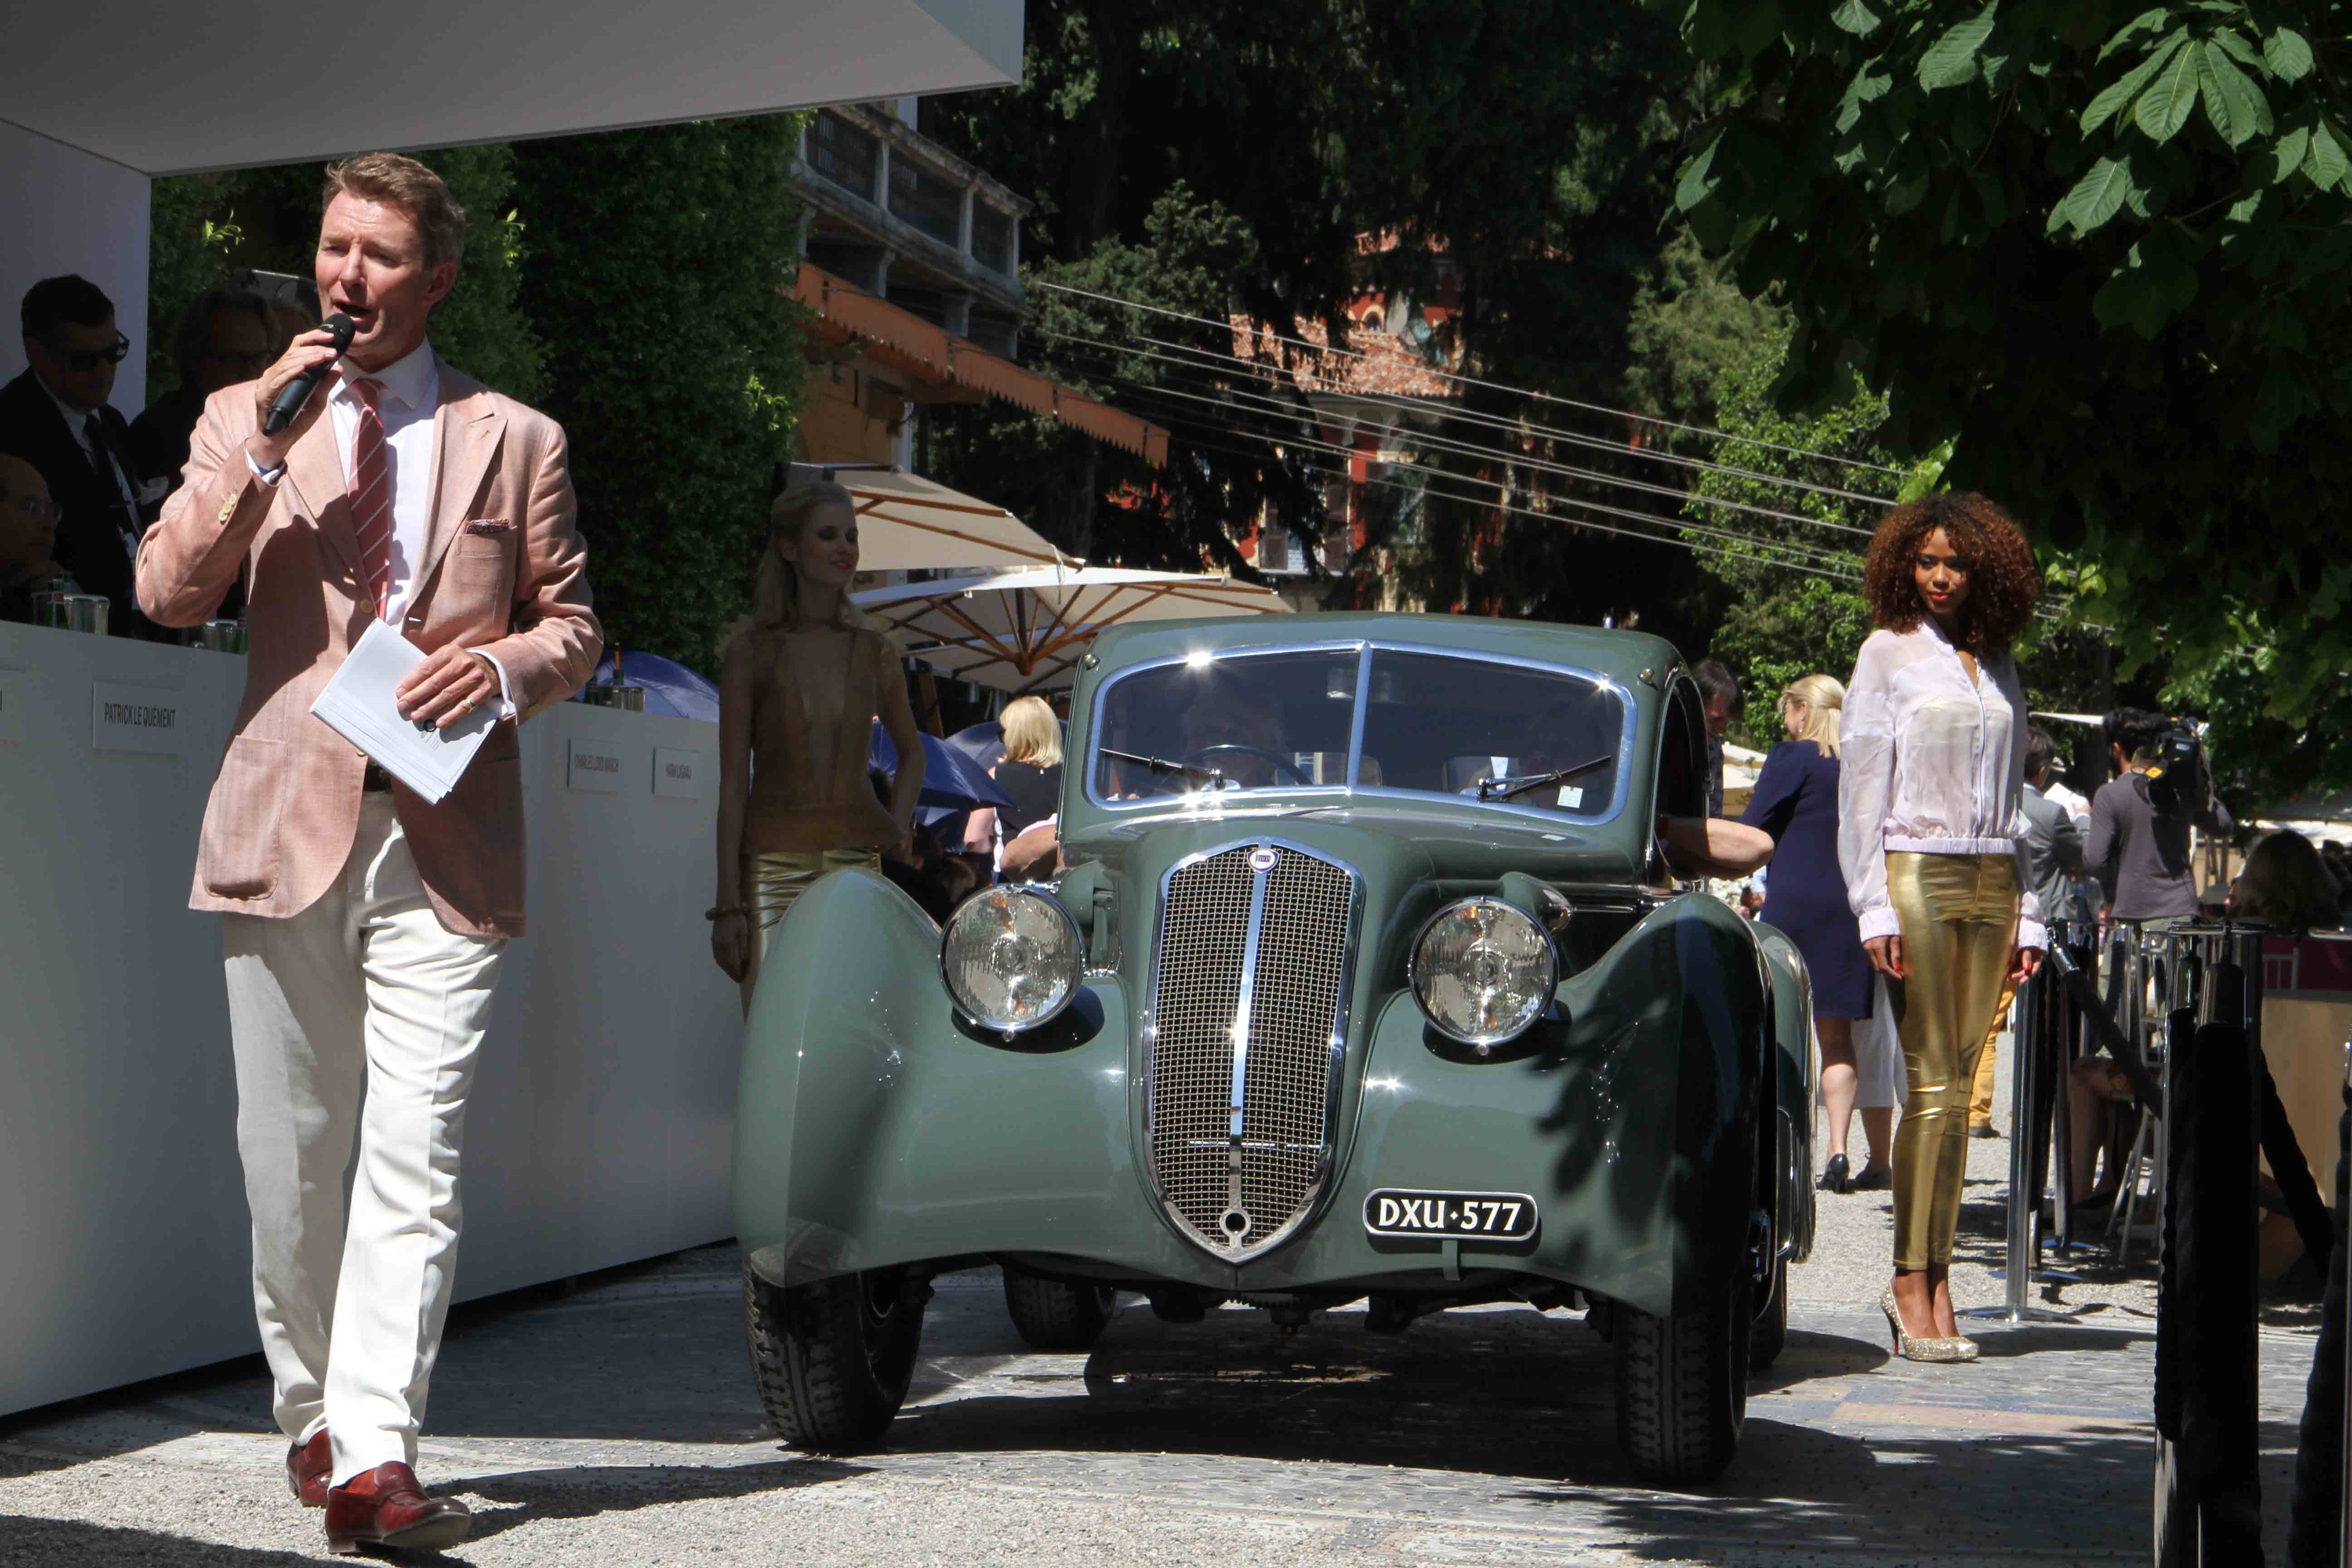 Photo Report: Watch And Car Spotting At The 2016 Concorso d'Eleganza Villa d'Este With A. Lange & Söhne Photo Report: Watch And Car Spotting At The 2016 Concorso d'Eleganza Villa d'Este With A. Lange & Söhne IMG 5466